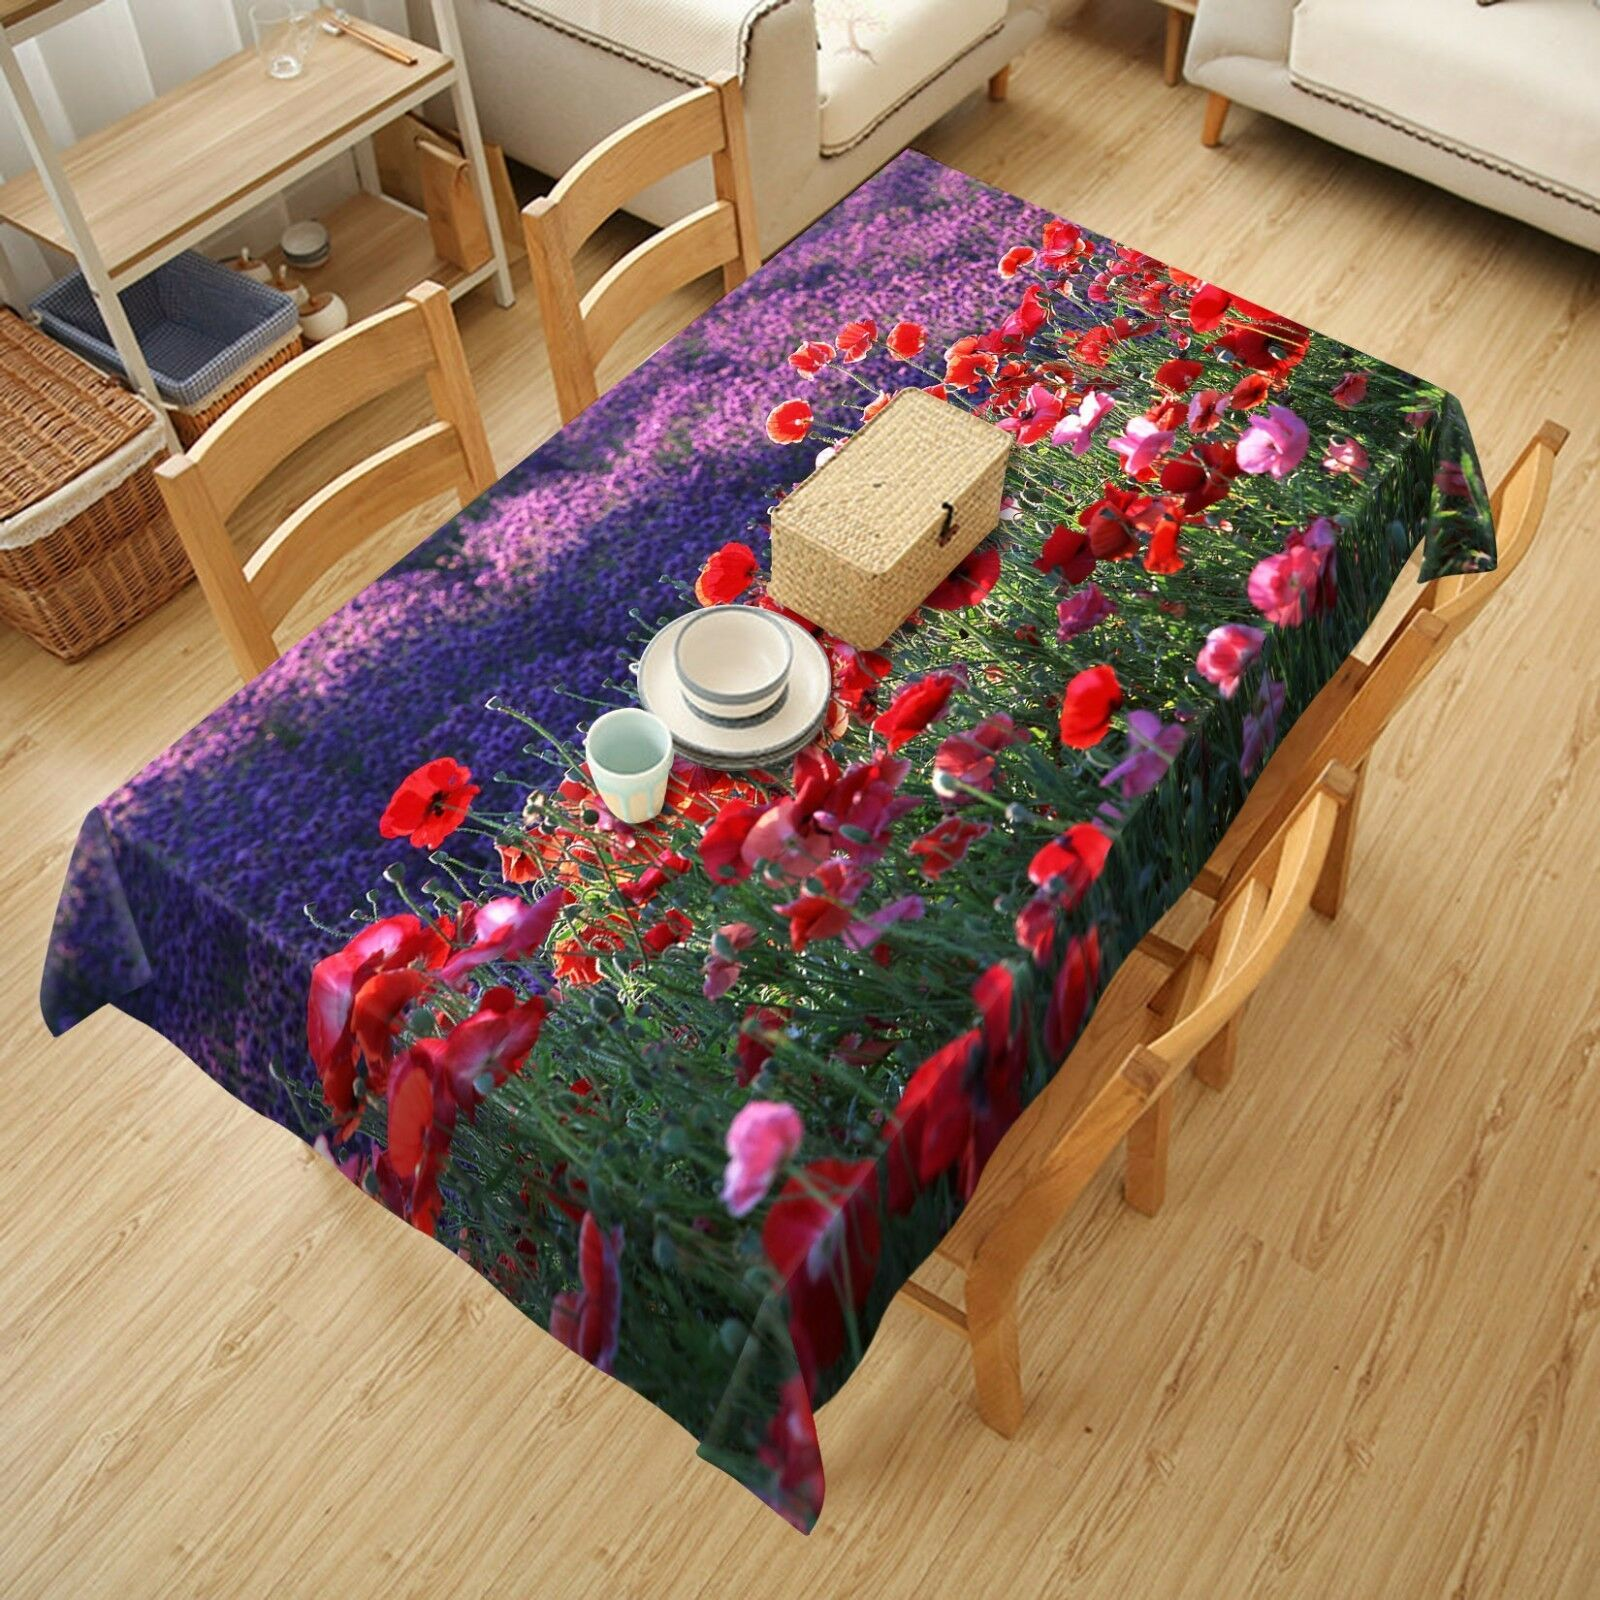 3D Flower 4480 Tablecloth Table Cover Cloth Birthday Party Event AJ WALLPAPER AU